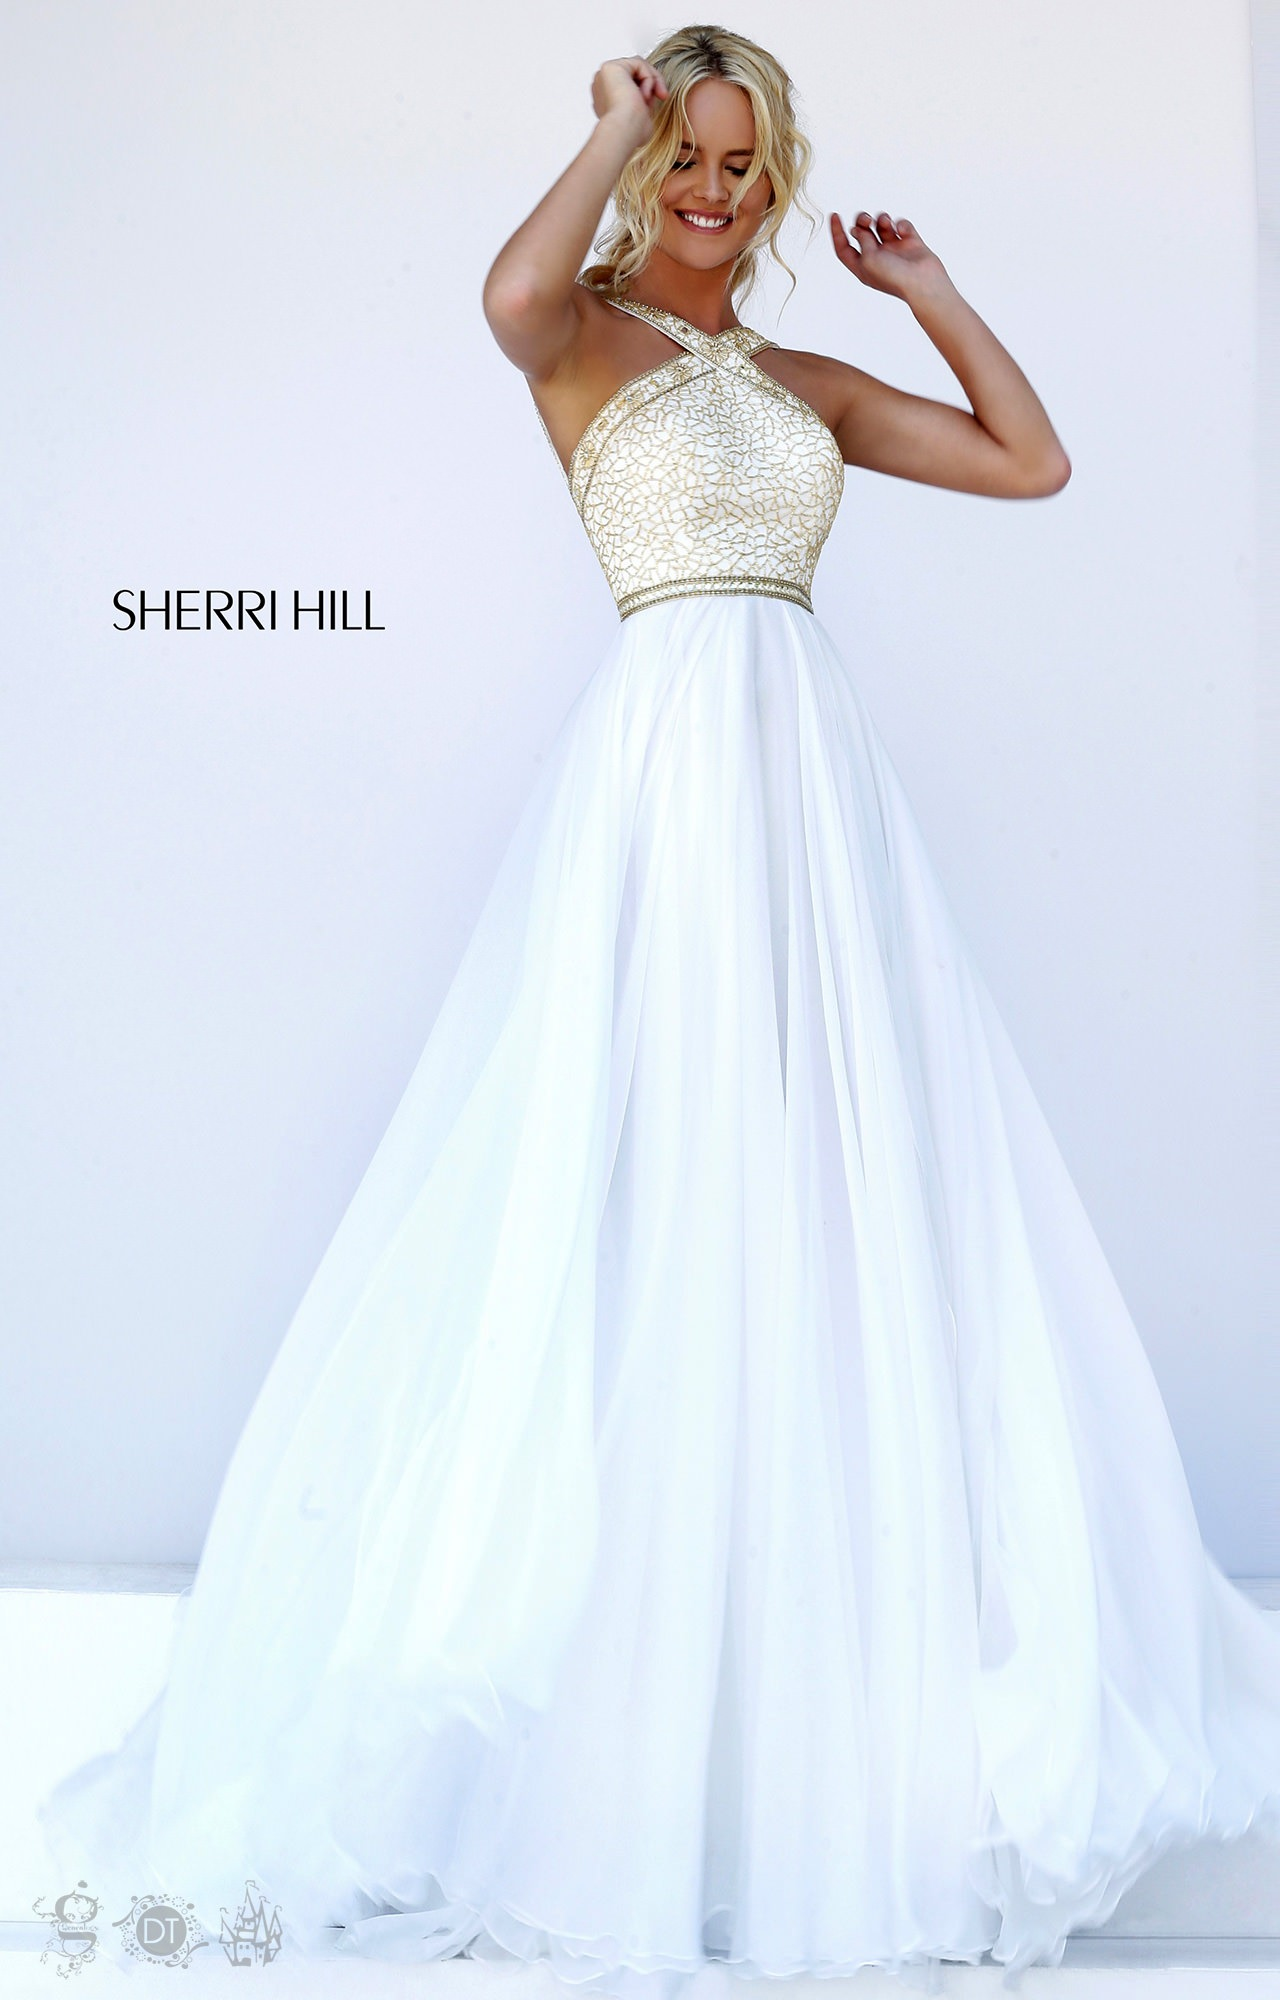 Sherri Hill 11319 The Carrie Diaries Gown Prom Dress